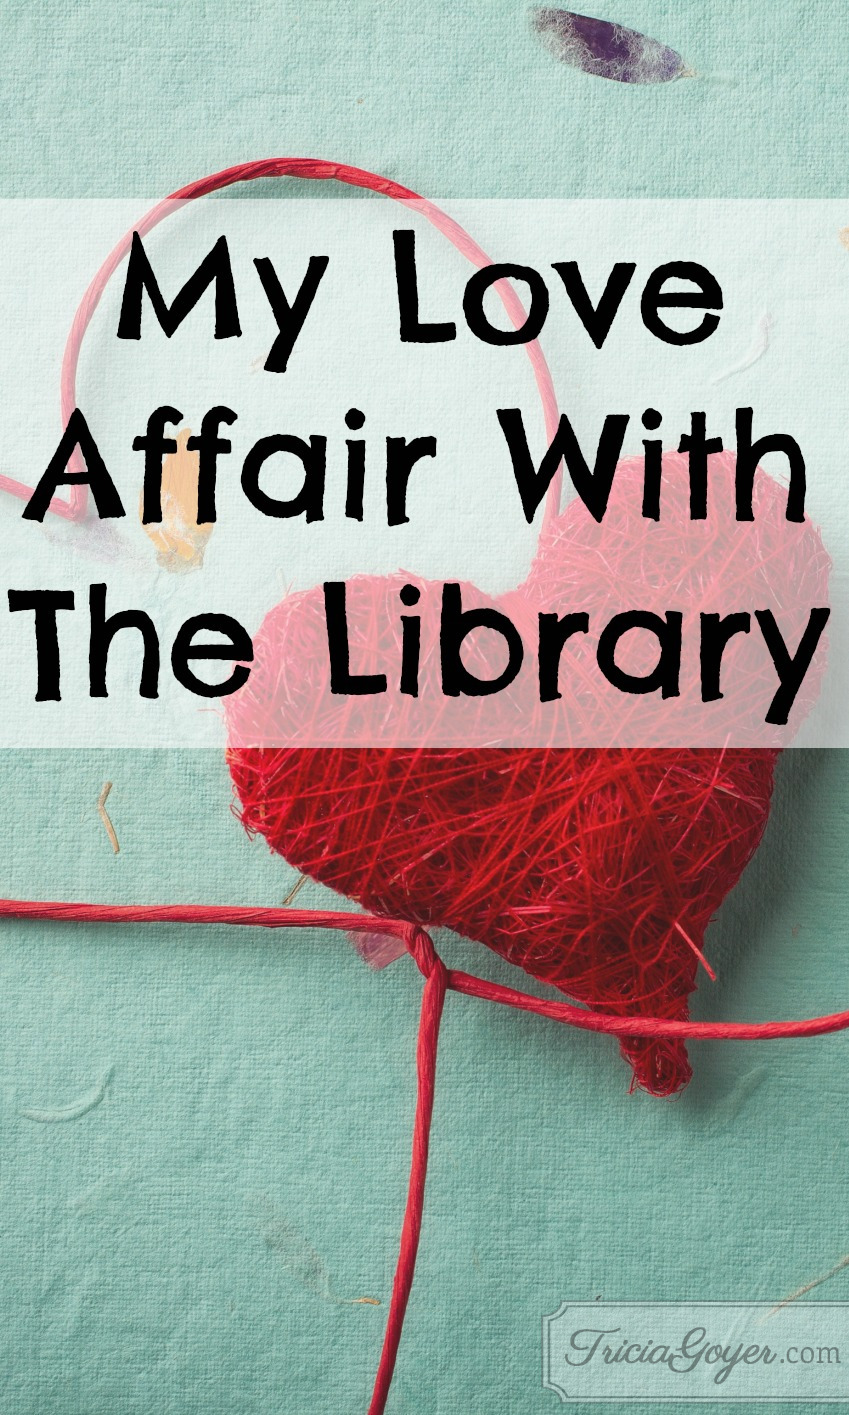 My Love Affair With The Library - Tricia Goyer